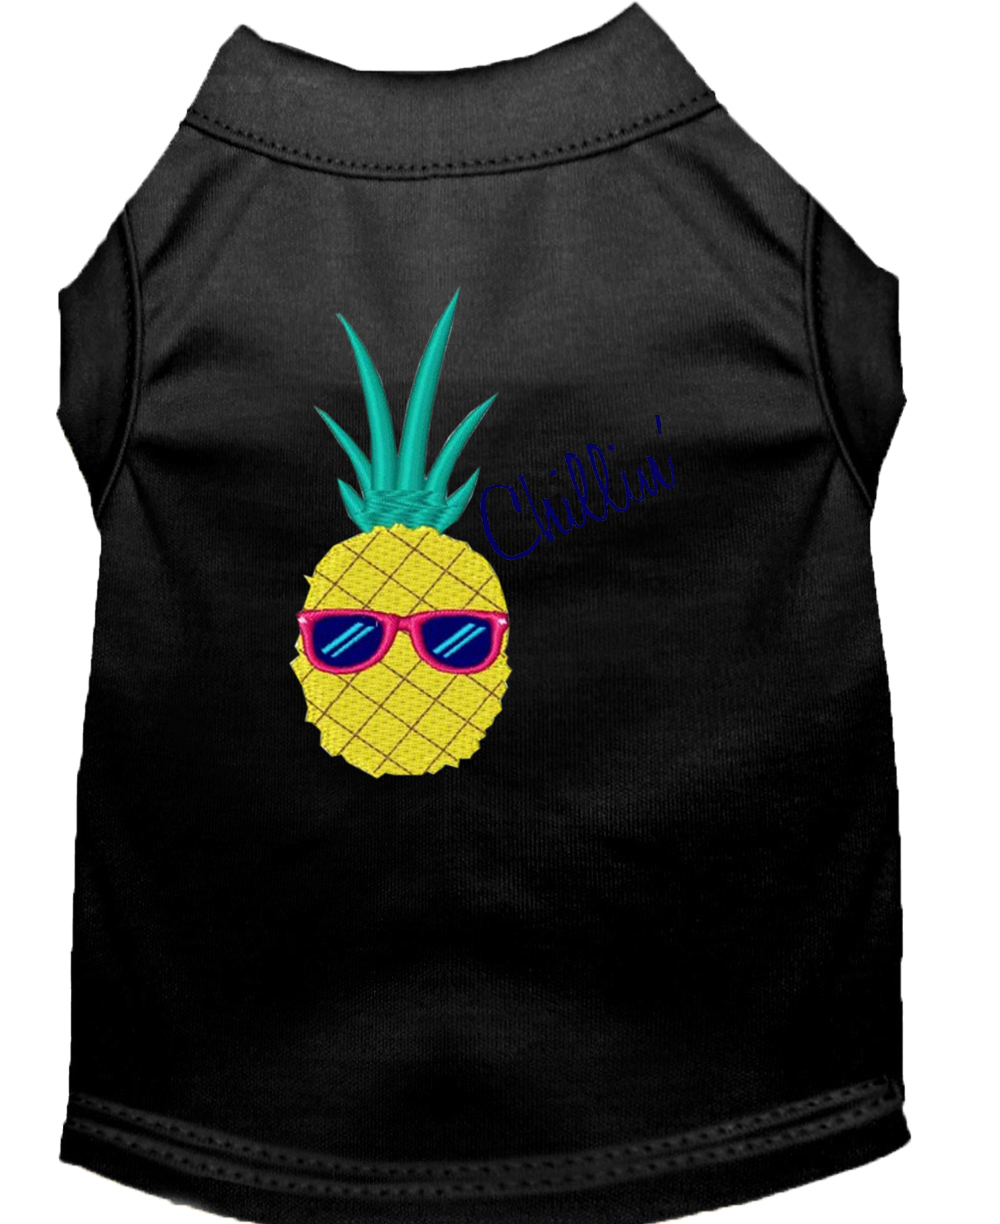 Pineapple chillin embroidered dog shirt black xxl 18 for Xxl 18 xxl 2012 black